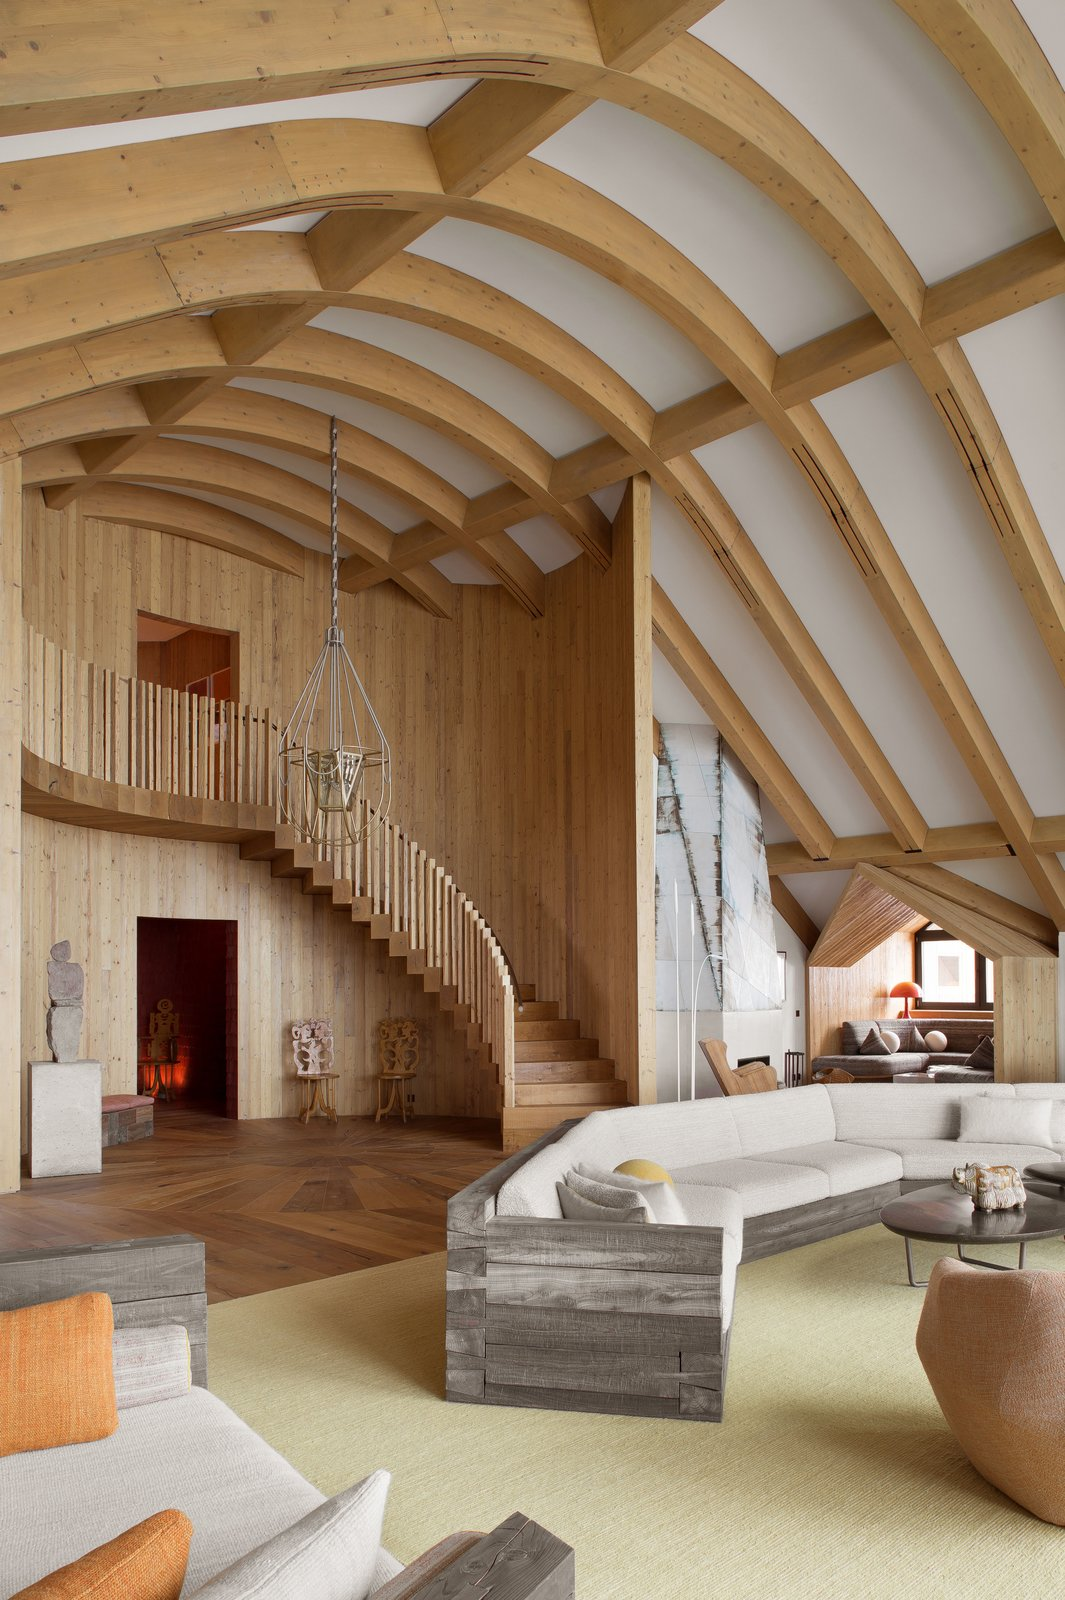 Matali Crasset's Lanterne suspension fixture in the spruce-paneled stairwell was originally created for a French cathedral.